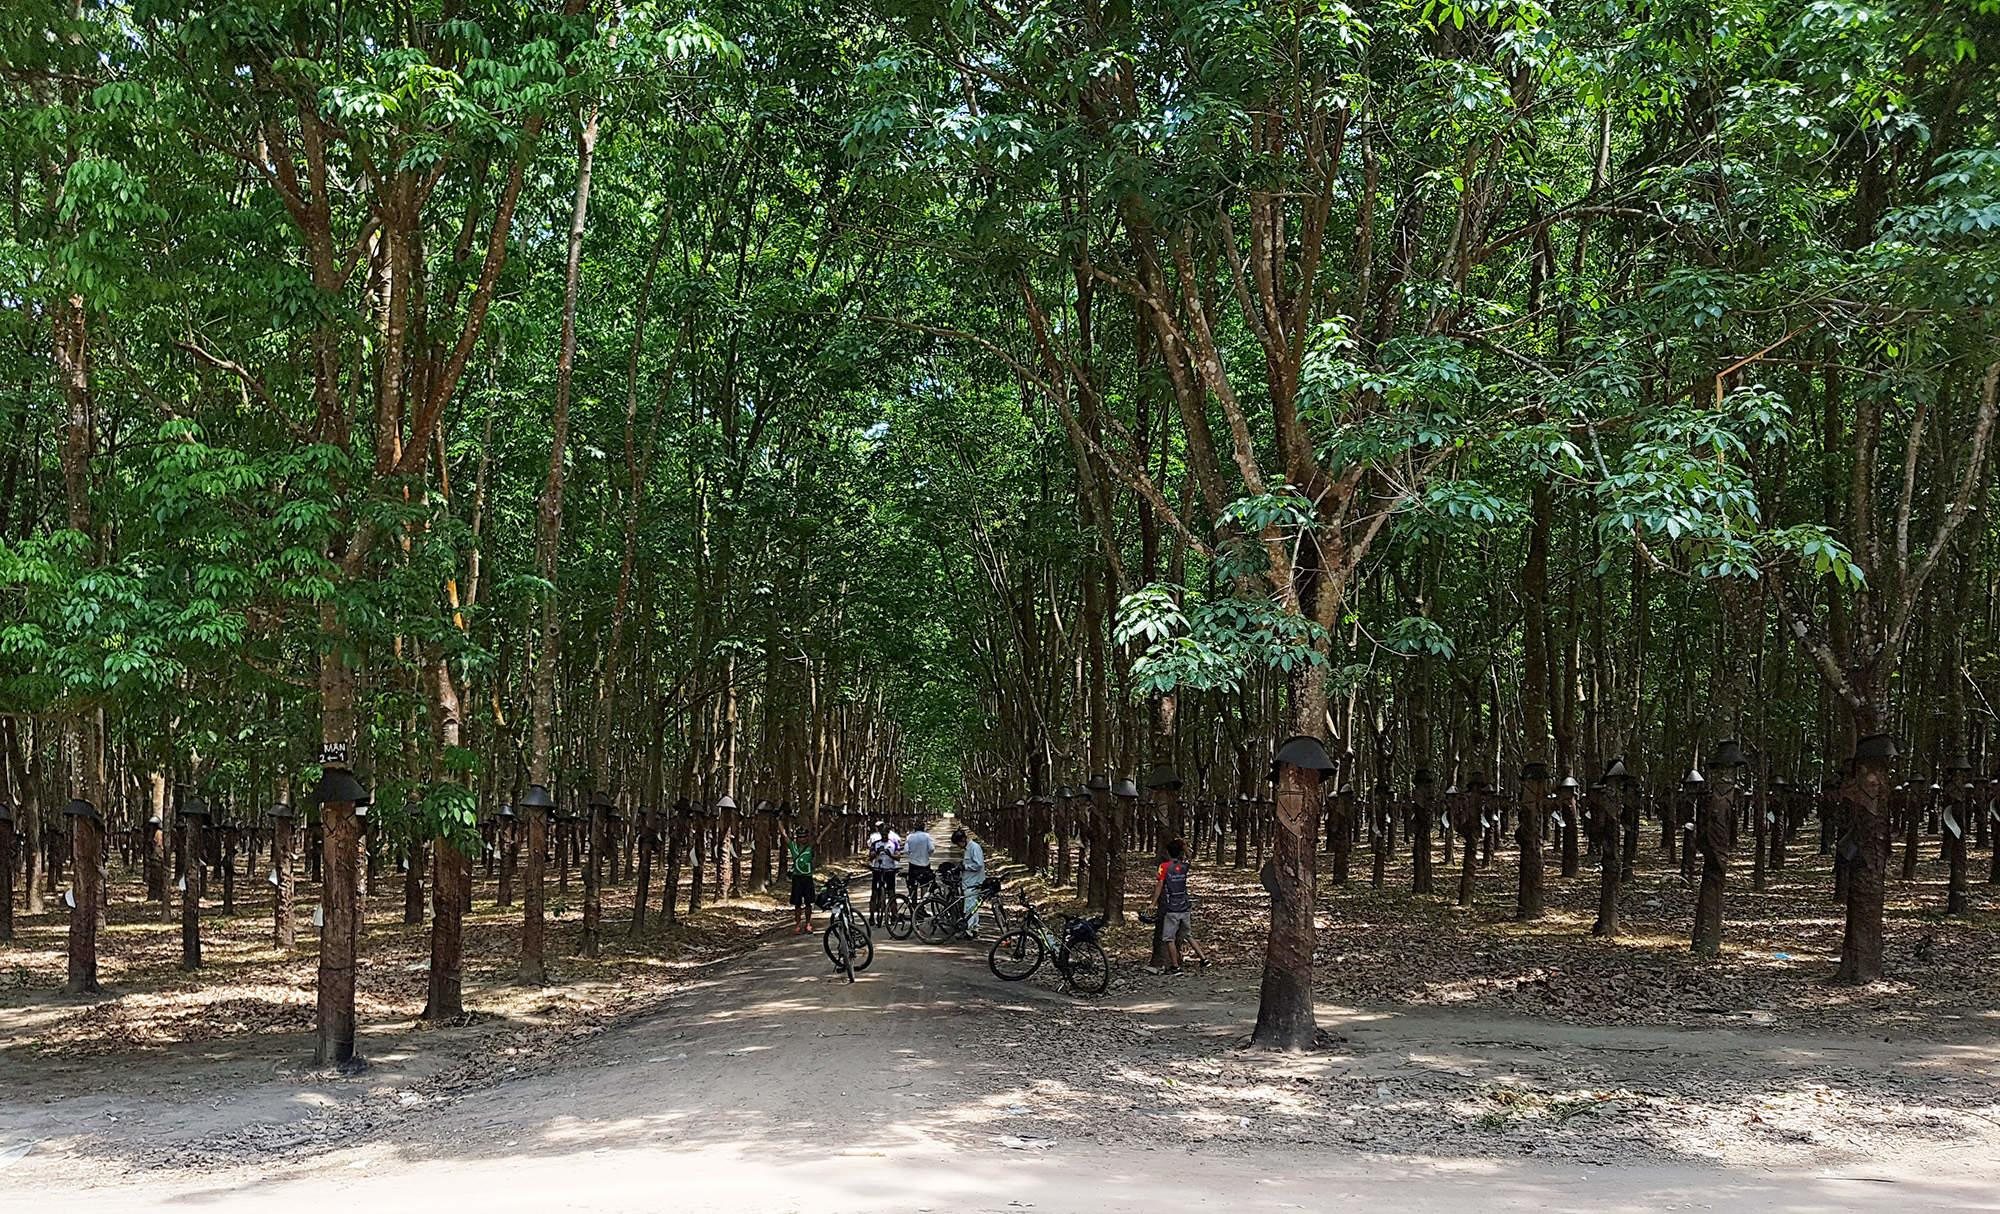 big rubber trees